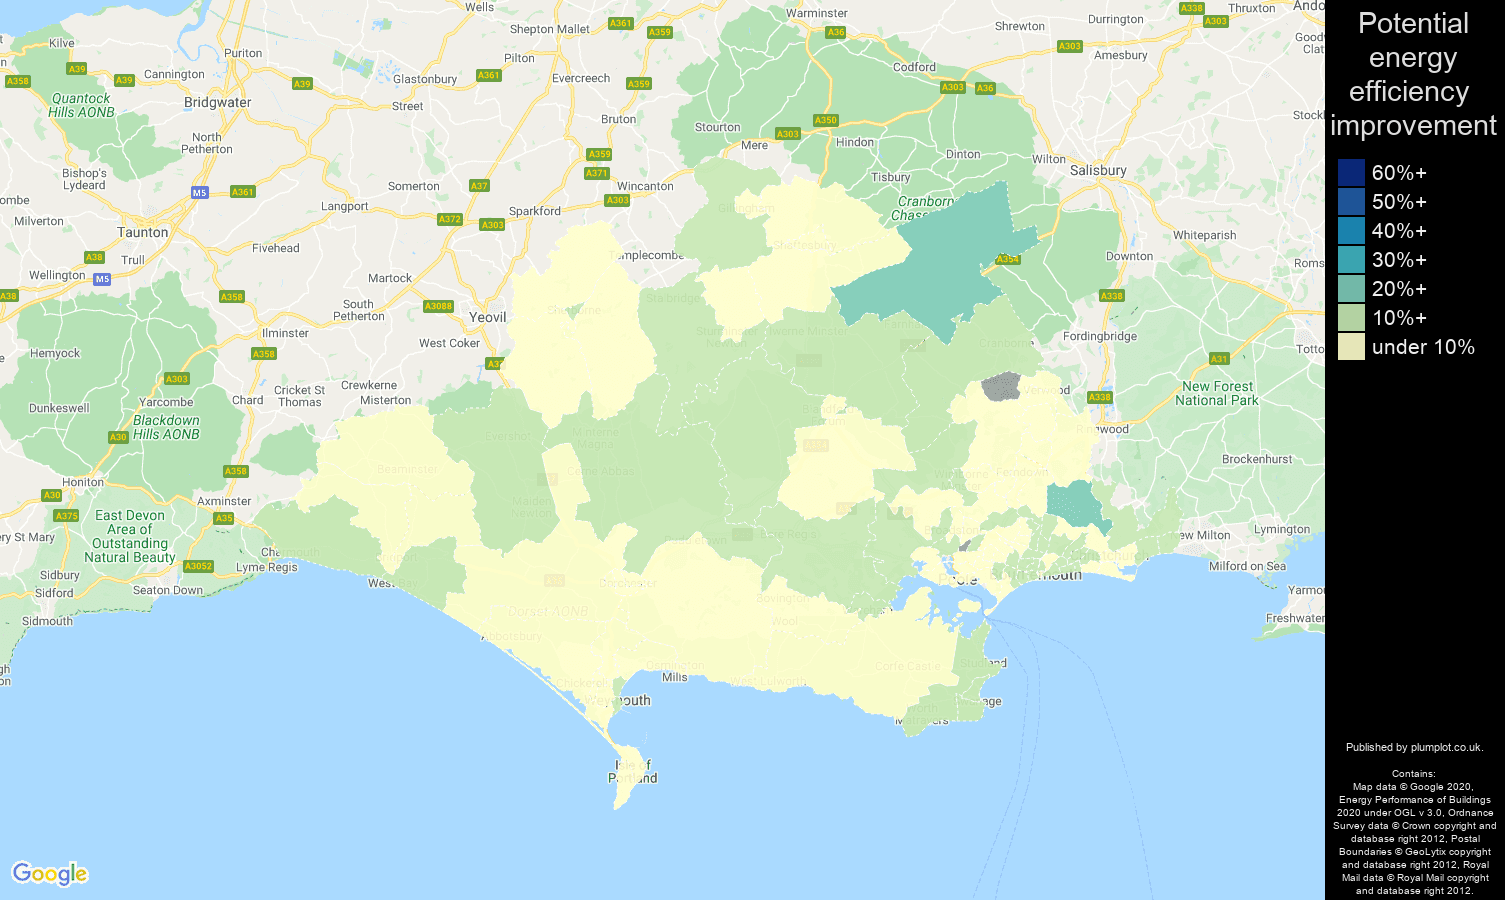 Dorset map of potential energy efficiency improvement of flats